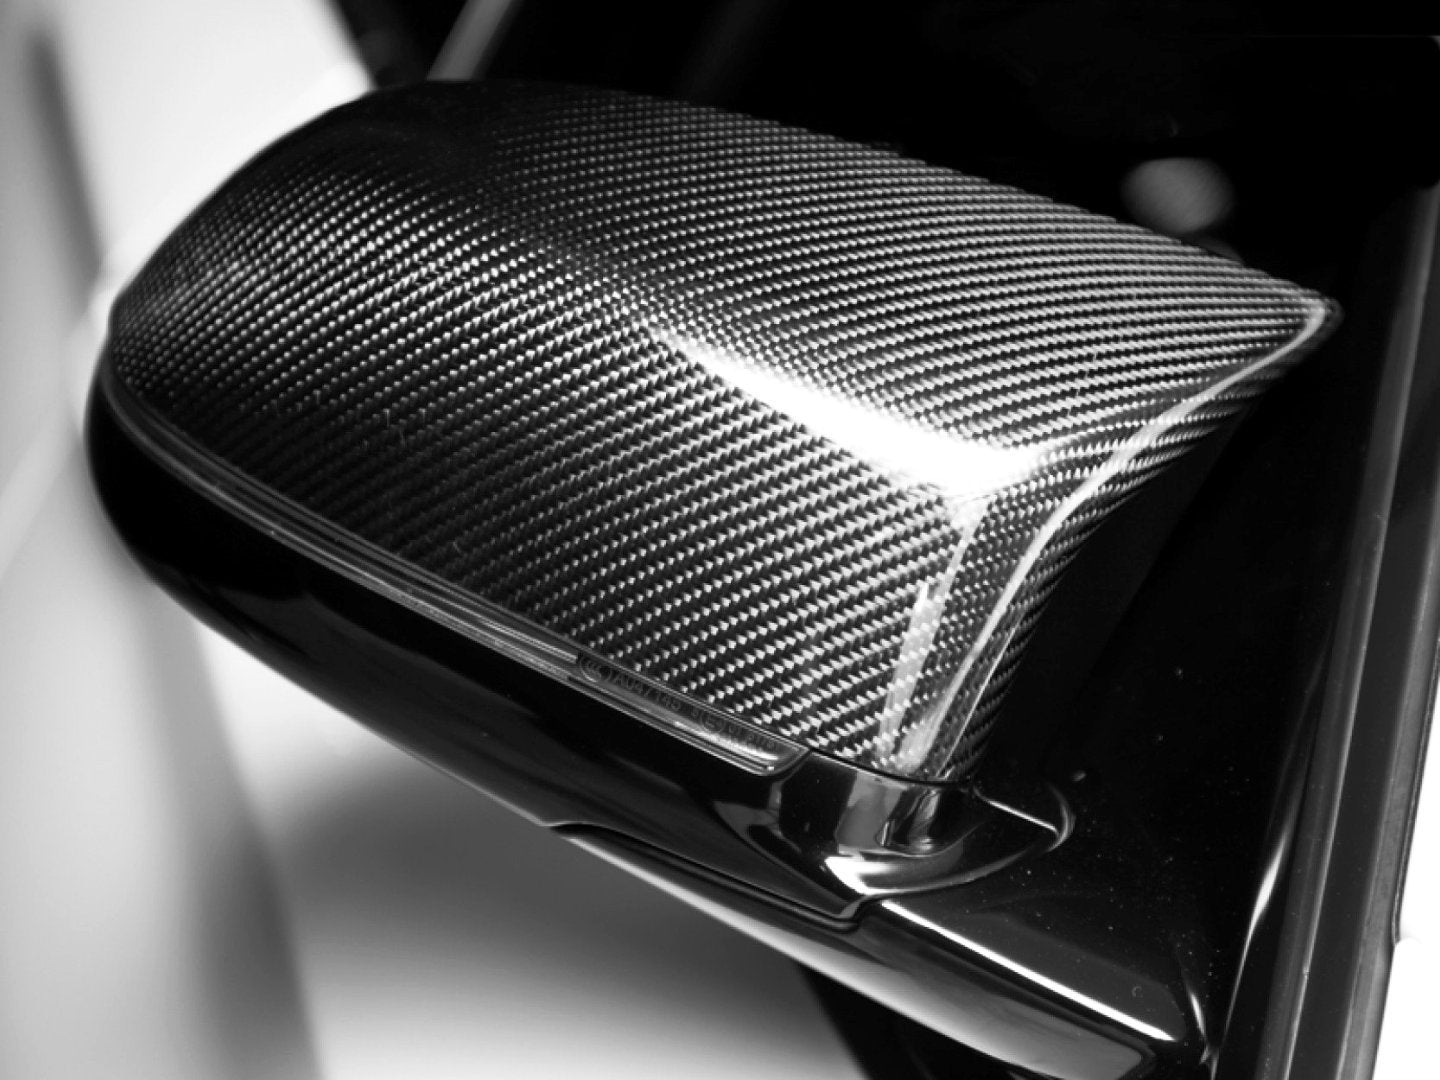 M MIRROR HOUSINGS - Exterior Accessories - Yomato Carbon - Montreal Canada